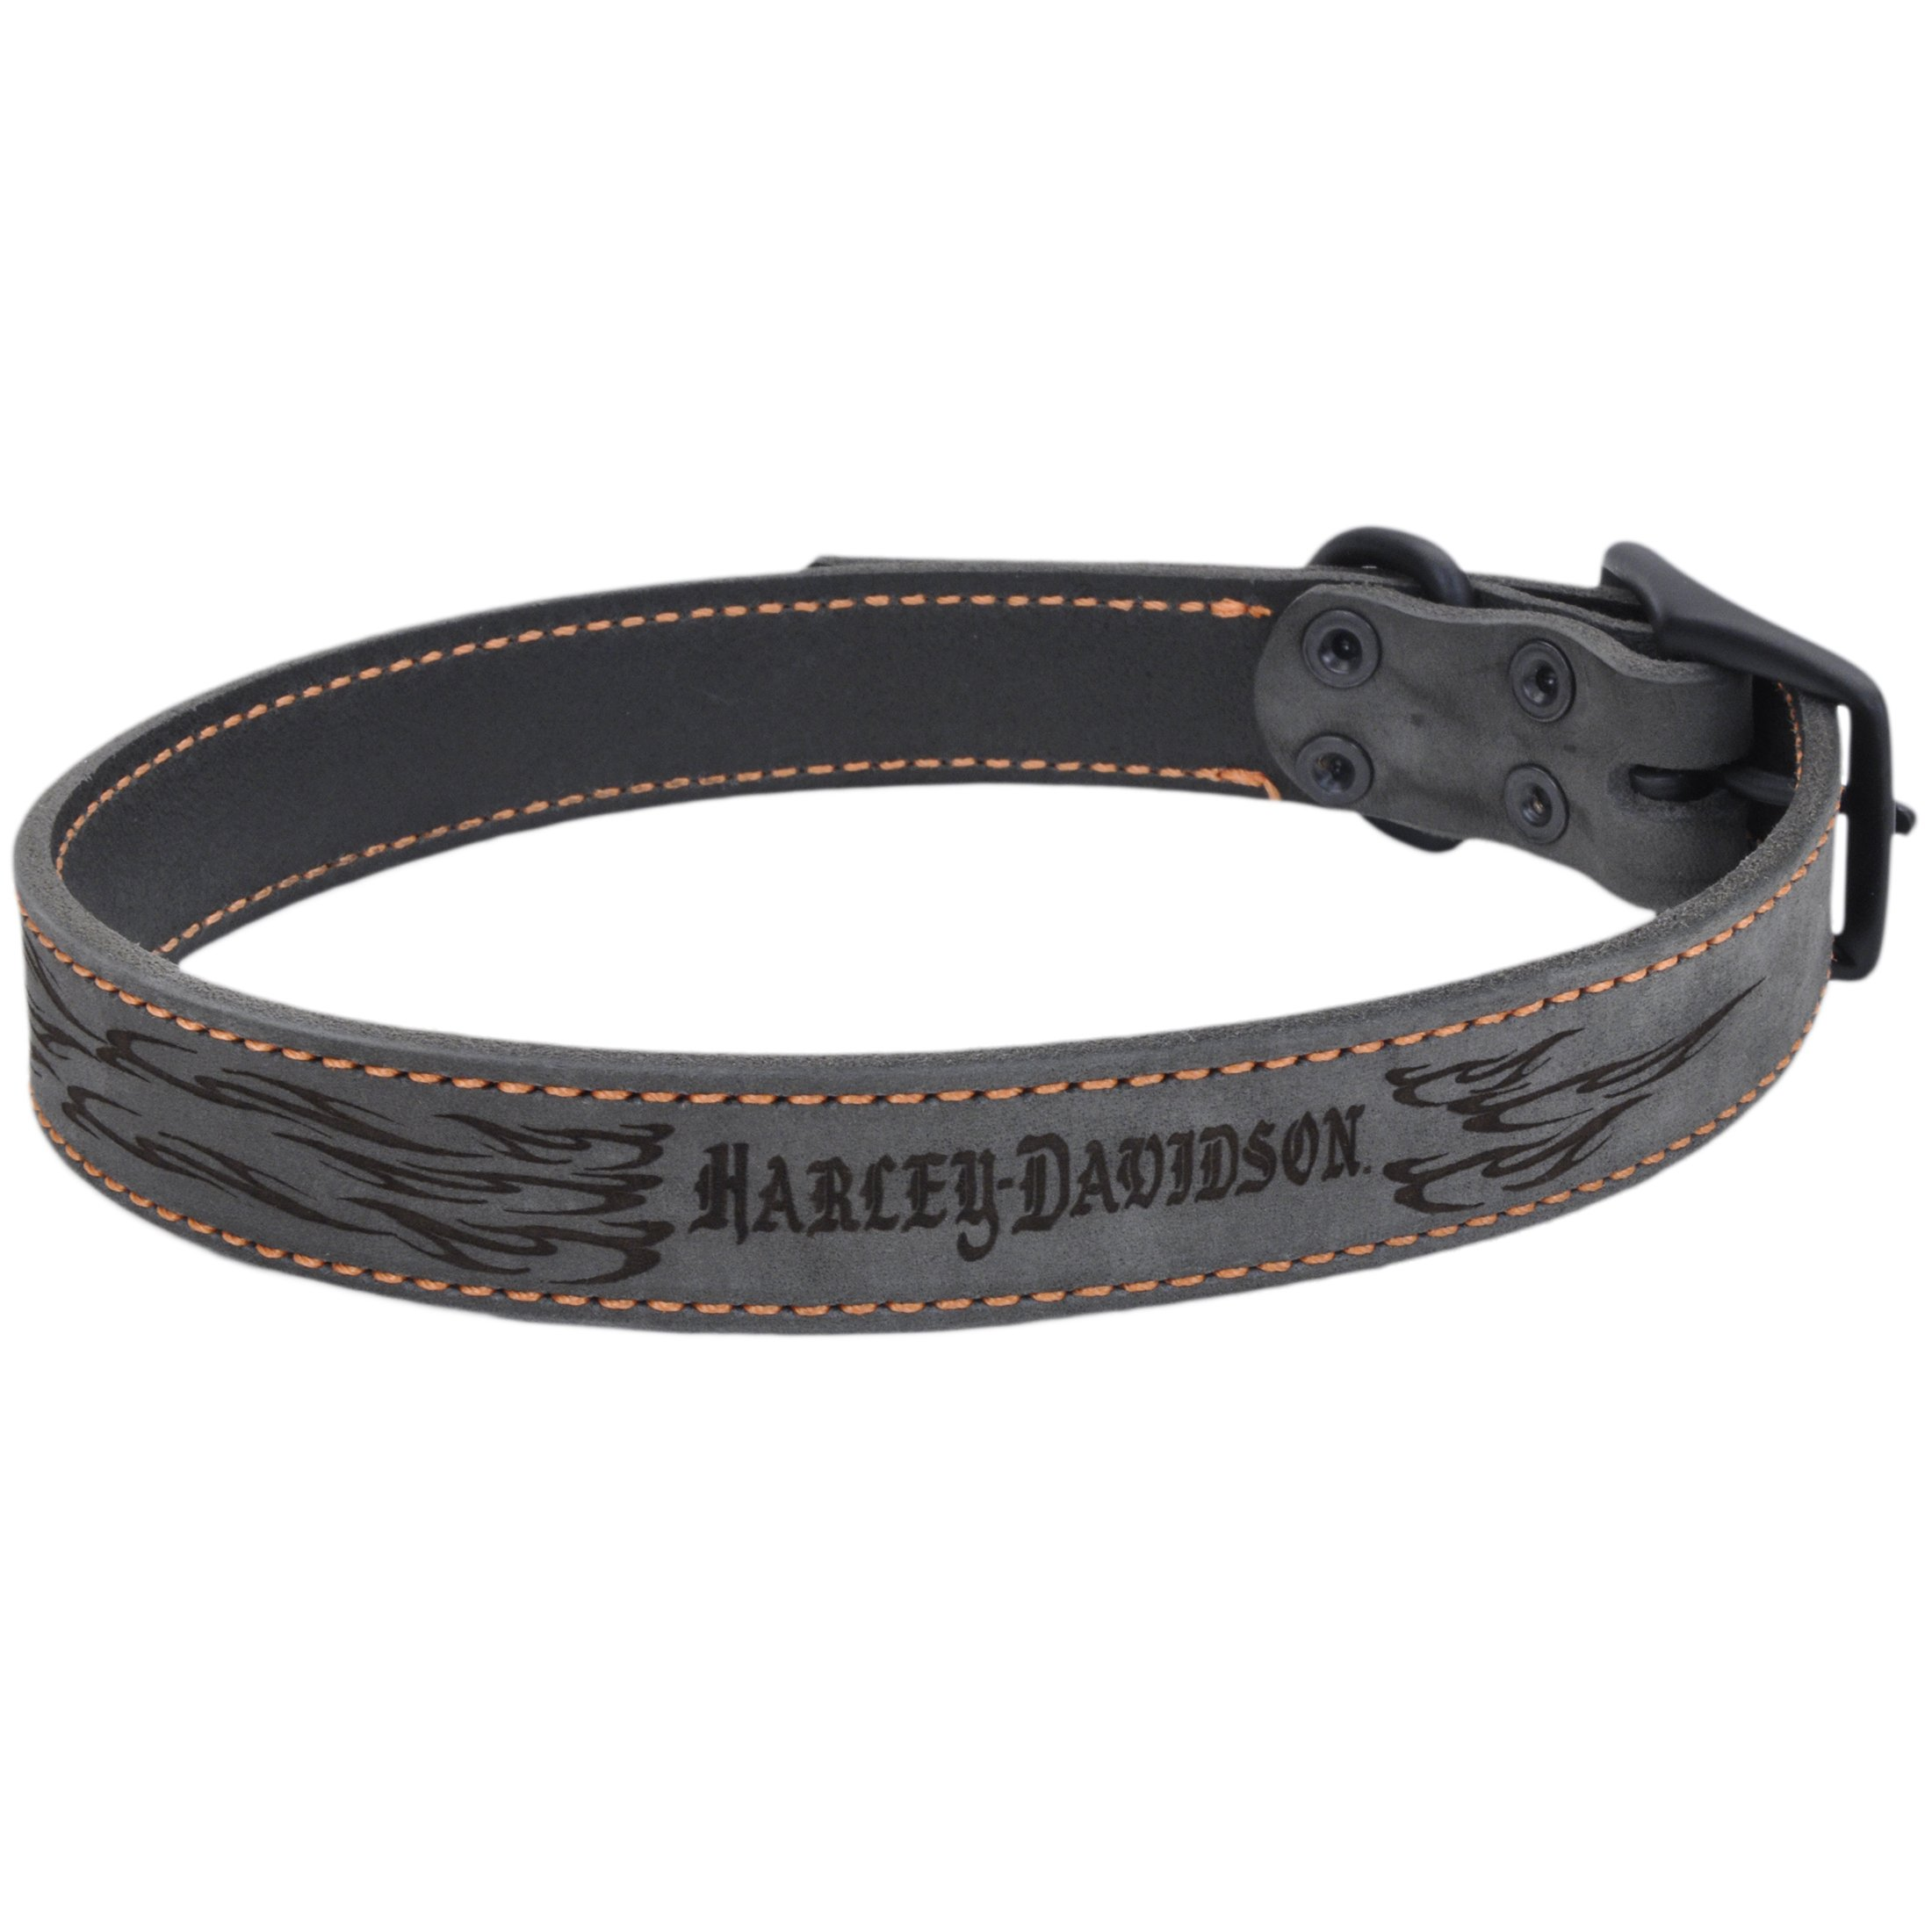 Harley Davidson Lasered Flame Rustic Leather Dog Collar | 1'' Width by 19'' to 22'' Girth by Harley-Davidson